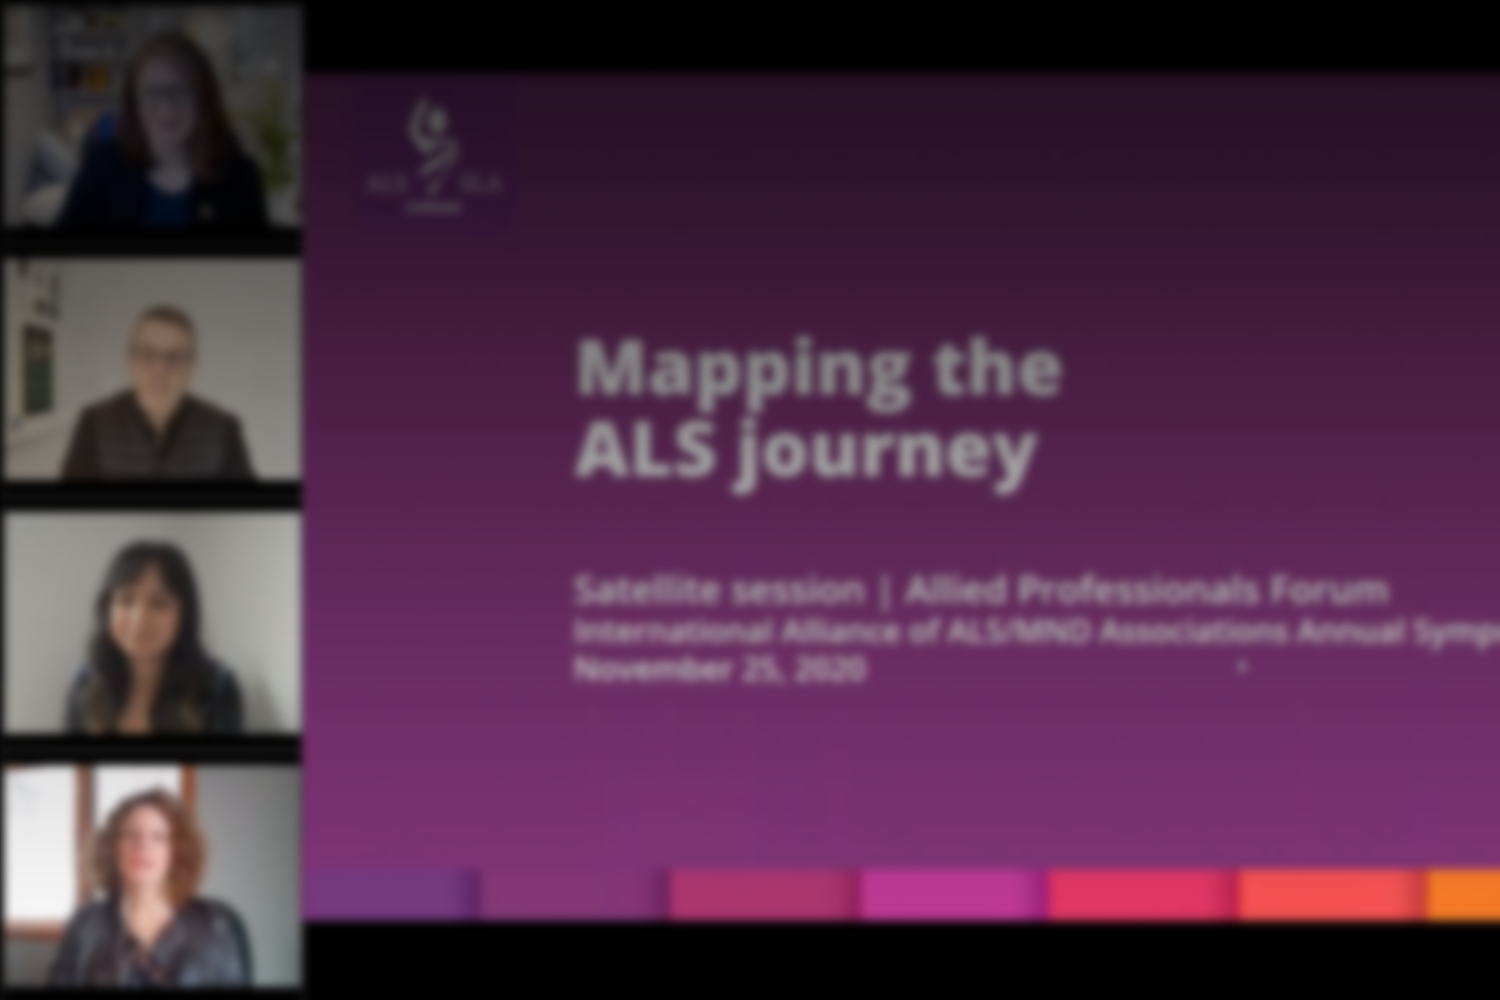 Mapping the ALS Canada Journey Presentation